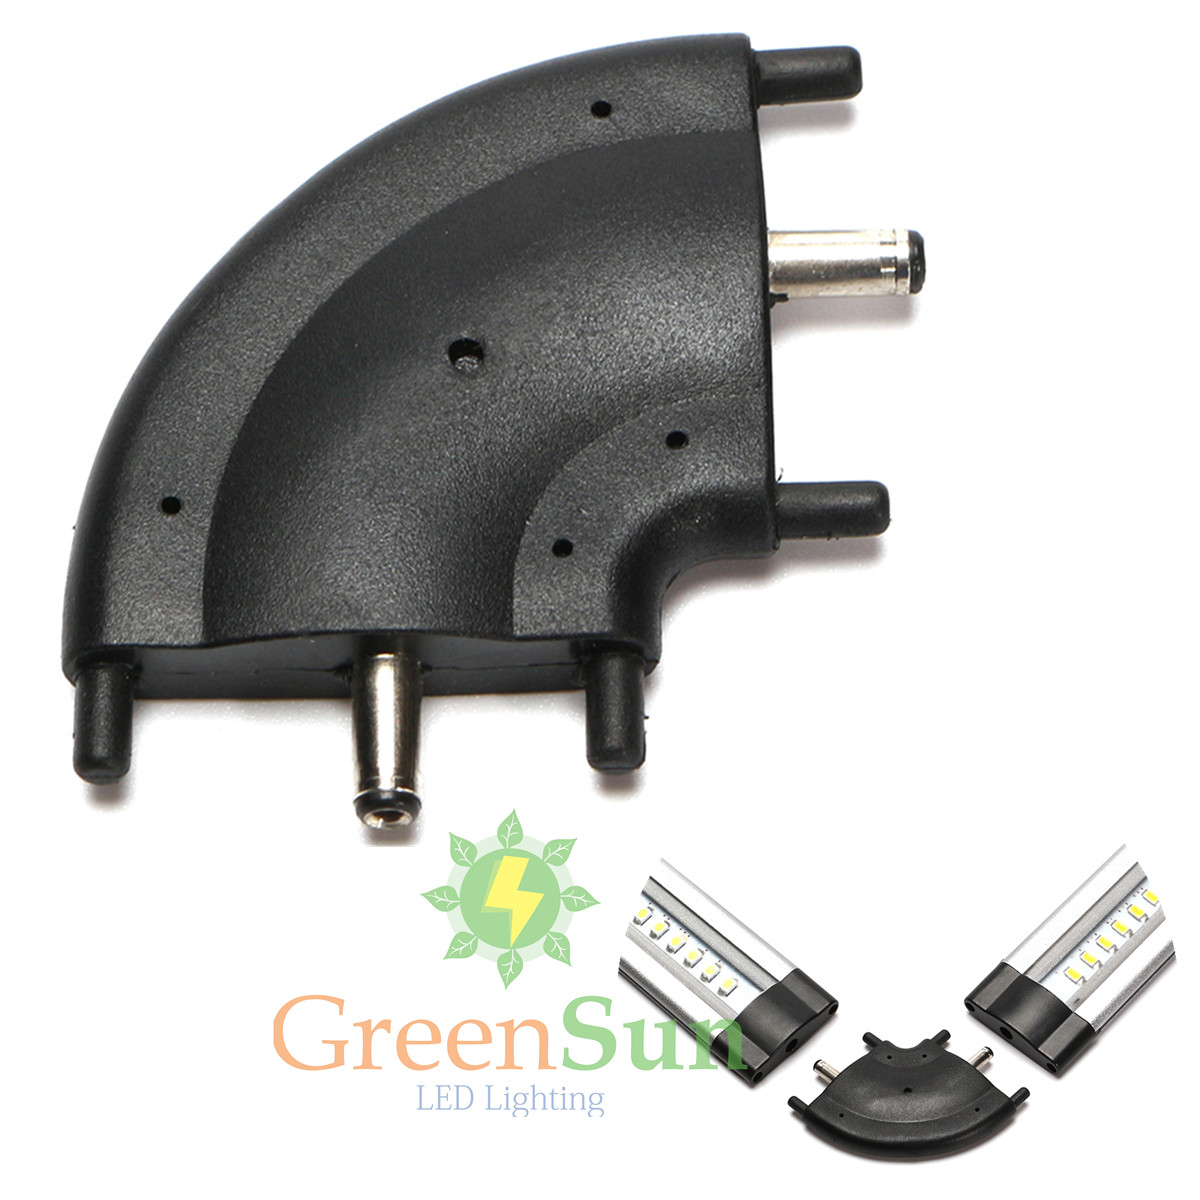 30/50CM LED Under Cabinet Light/Power Adapter/Connector